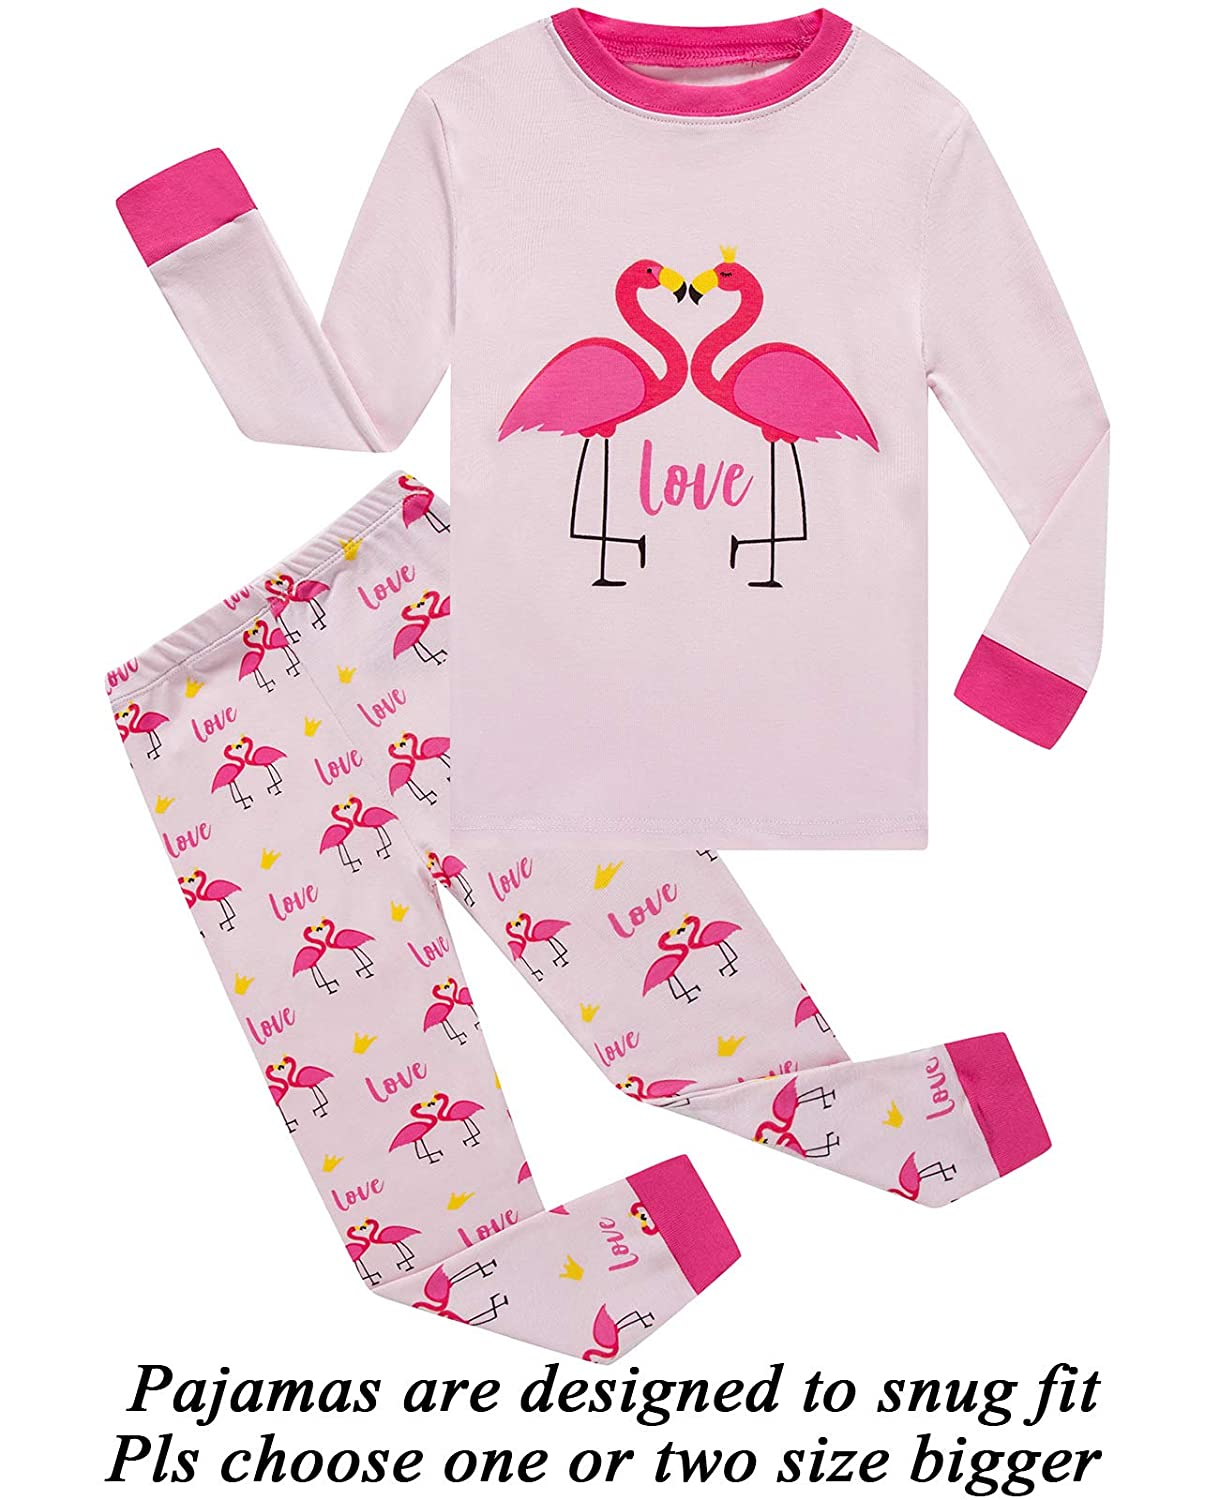 Little Girls Pajamas 100% Cotton Long Sleeve Pjs Toddler Clothes Kids Sleepwear Shirts 66lanseowl47